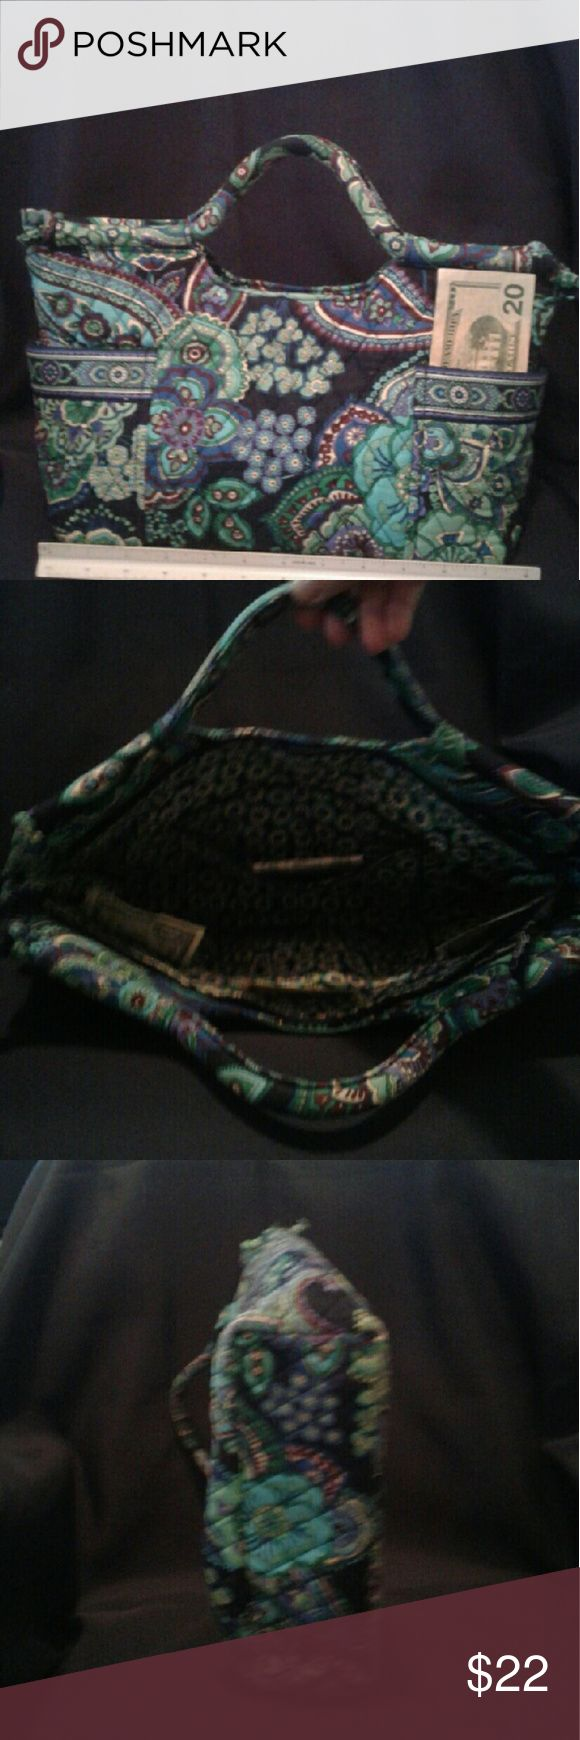 Vera Bradley purse Many pockets inside and out. Good condition from smoke free house Vera Bradley Bags Satchels